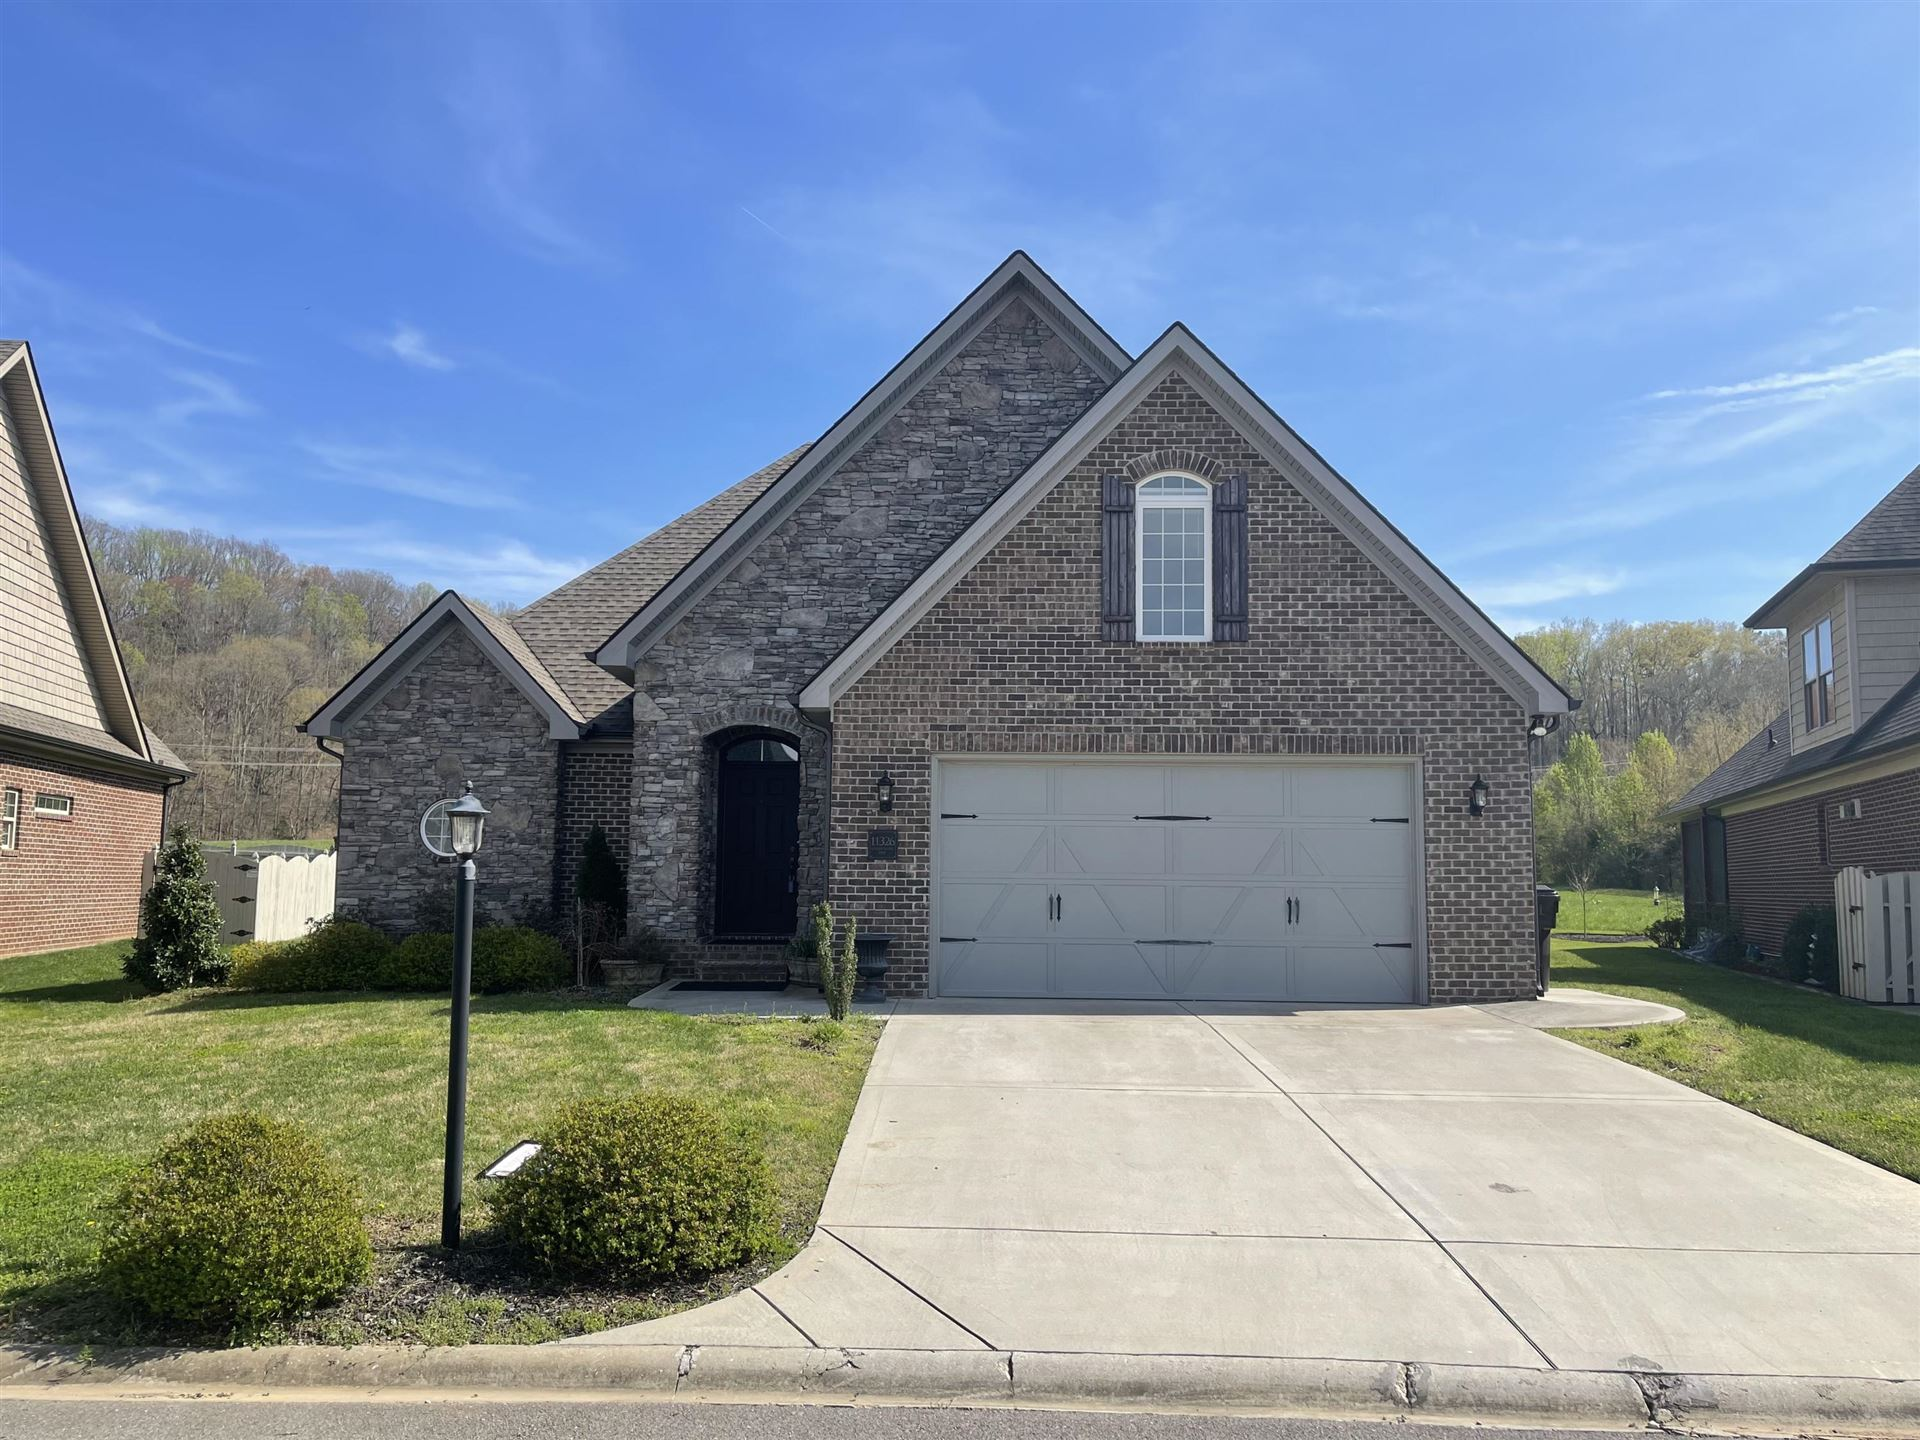 Photo of 11326 Shady Slope Way, Knoxville, TN 37932 (MLS # 1147522)